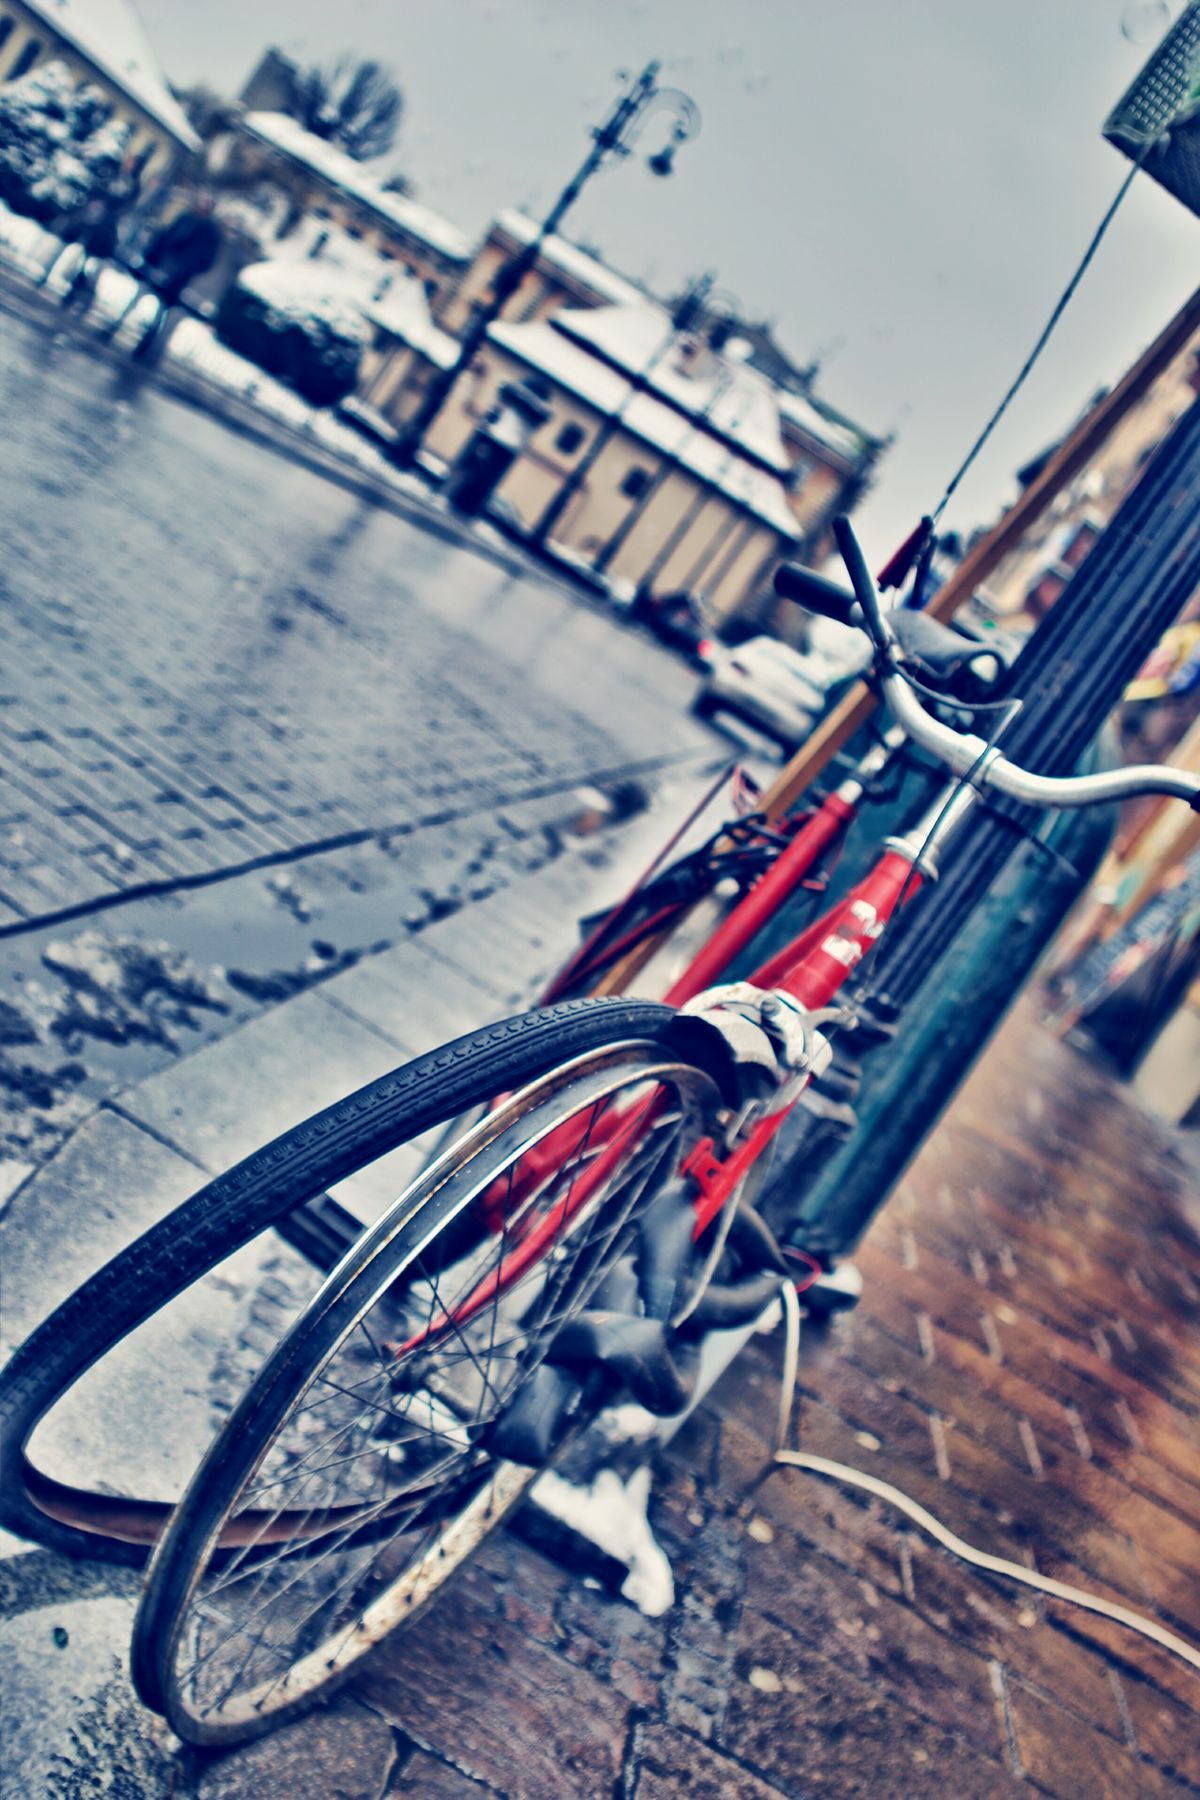 Outdoors No People Close-up Day Transportation Bicycle Broken Tires Tire Wheel City Wet Wet Street Deflated Rim Broken Damaged